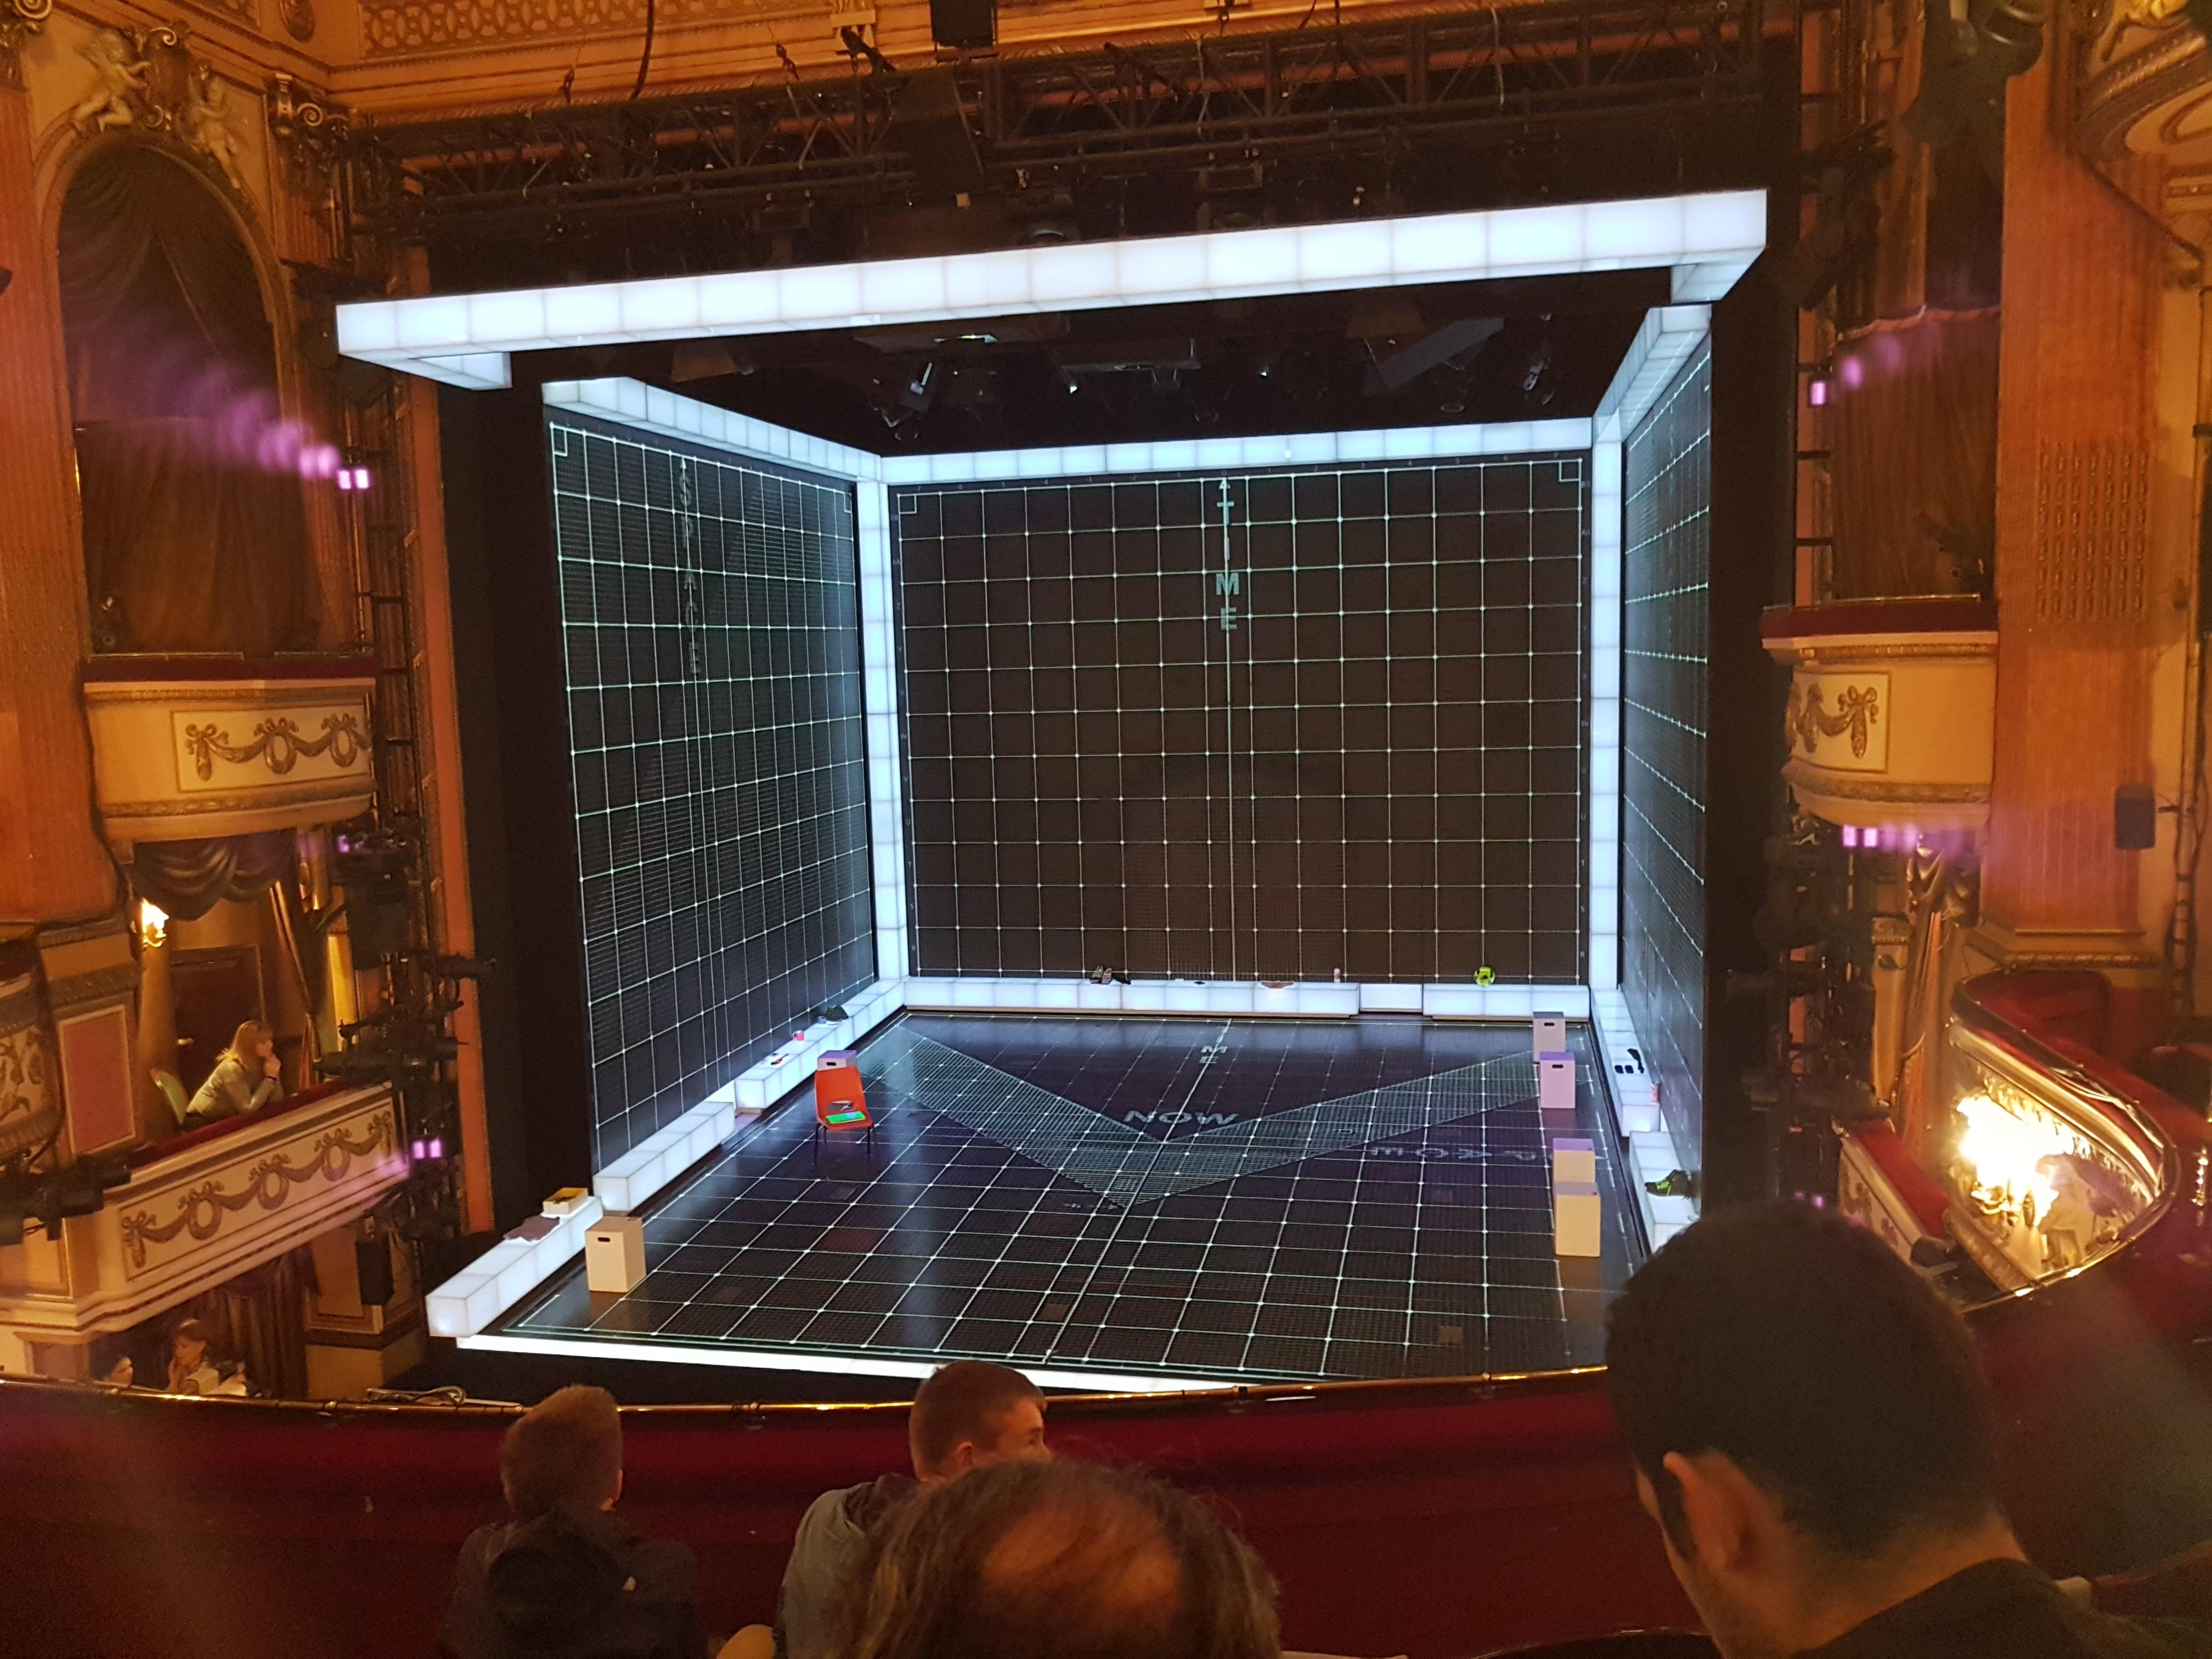 Gielgud Theatre Section Dress Circle Row D Seat 11